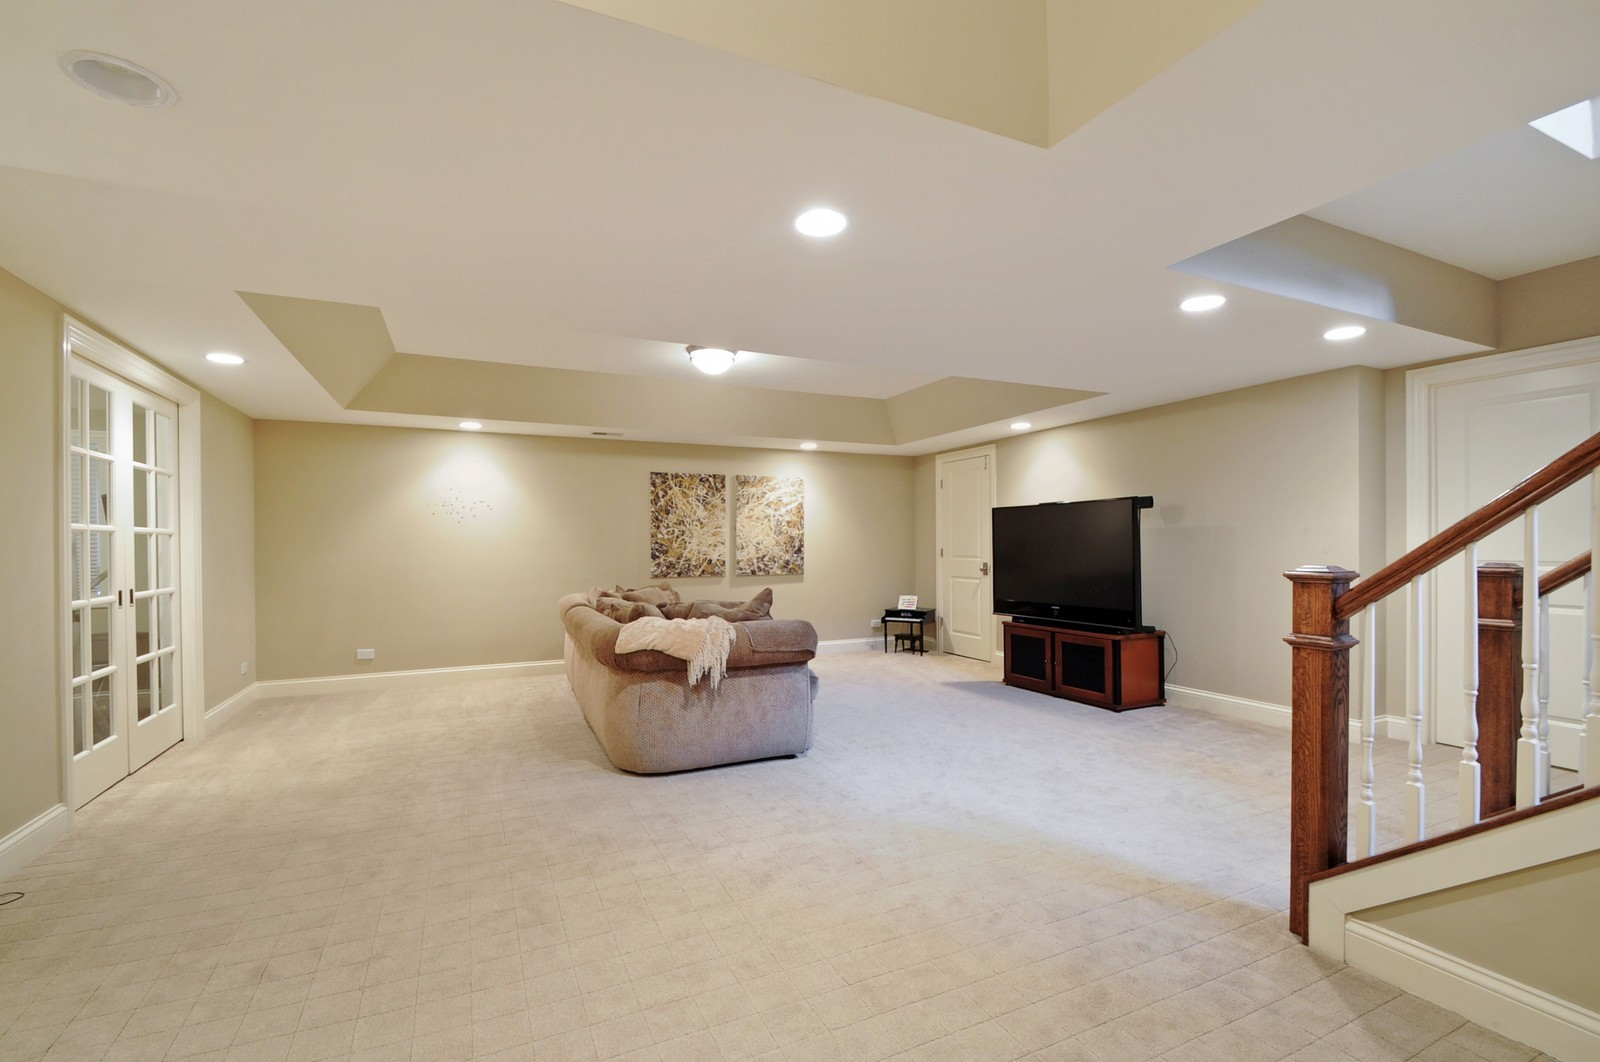 Real Estate Photography - 1789 Elmwood, Highland Park, IL, 60035 - Lower Level